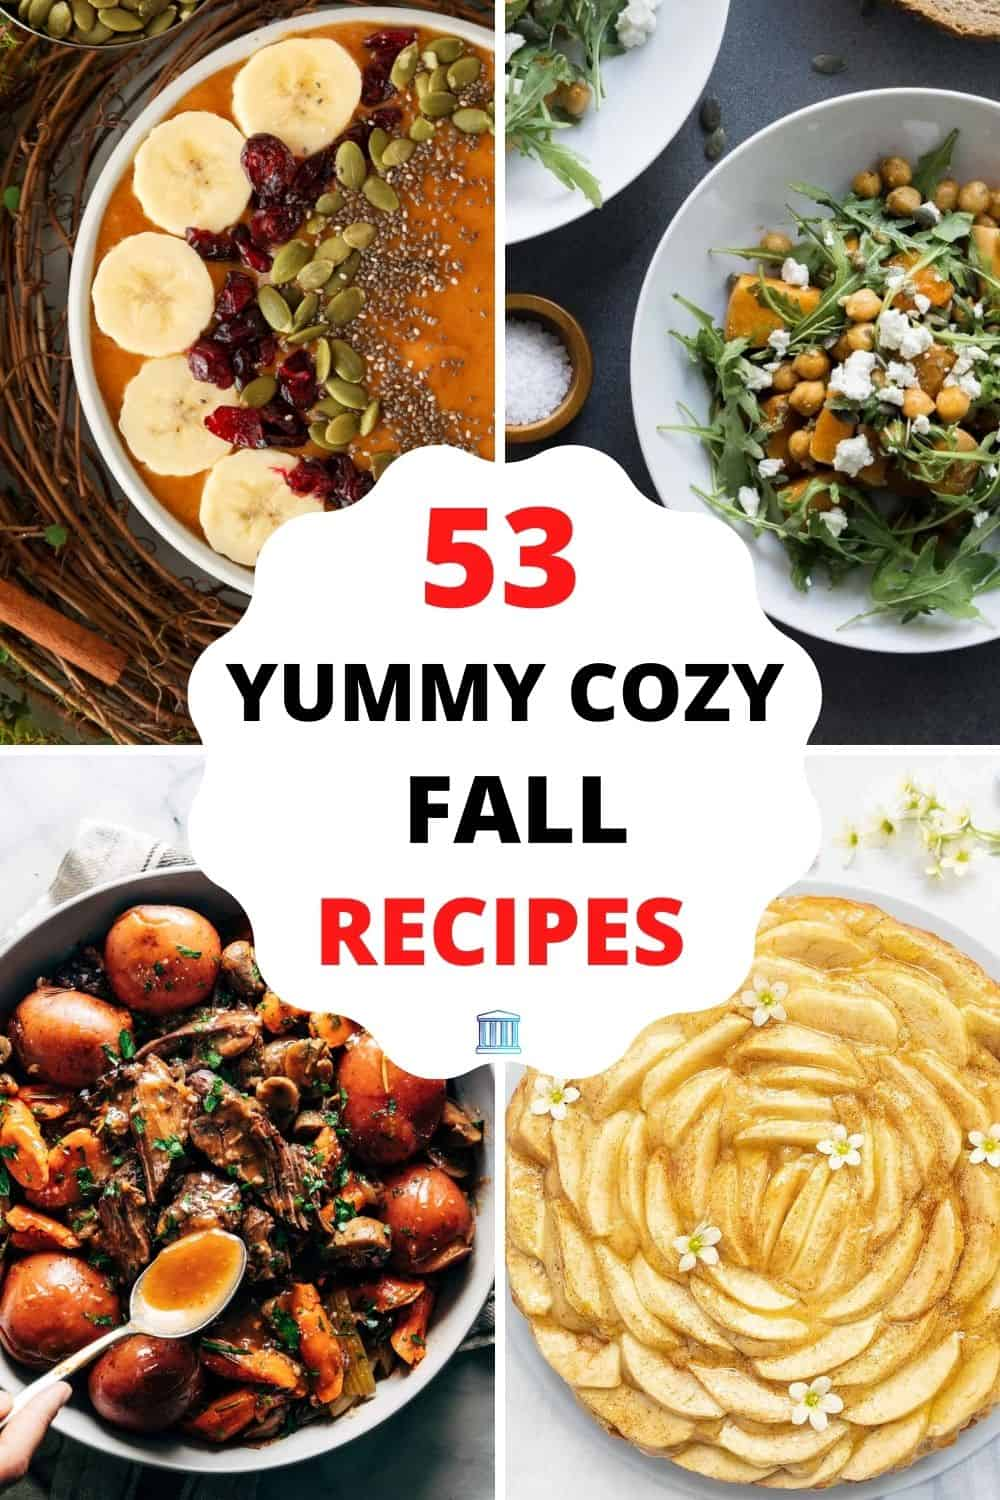 Pumpkin Smoothie Bowl by Fresh Coast Eats; Roasted Butternut Squash Salad with Feta by Gathering Dreams; Instant Pot Pot Roast by Pinch of Yum; Easy & Healthy Apple Cake Recipe by The Clever Meal